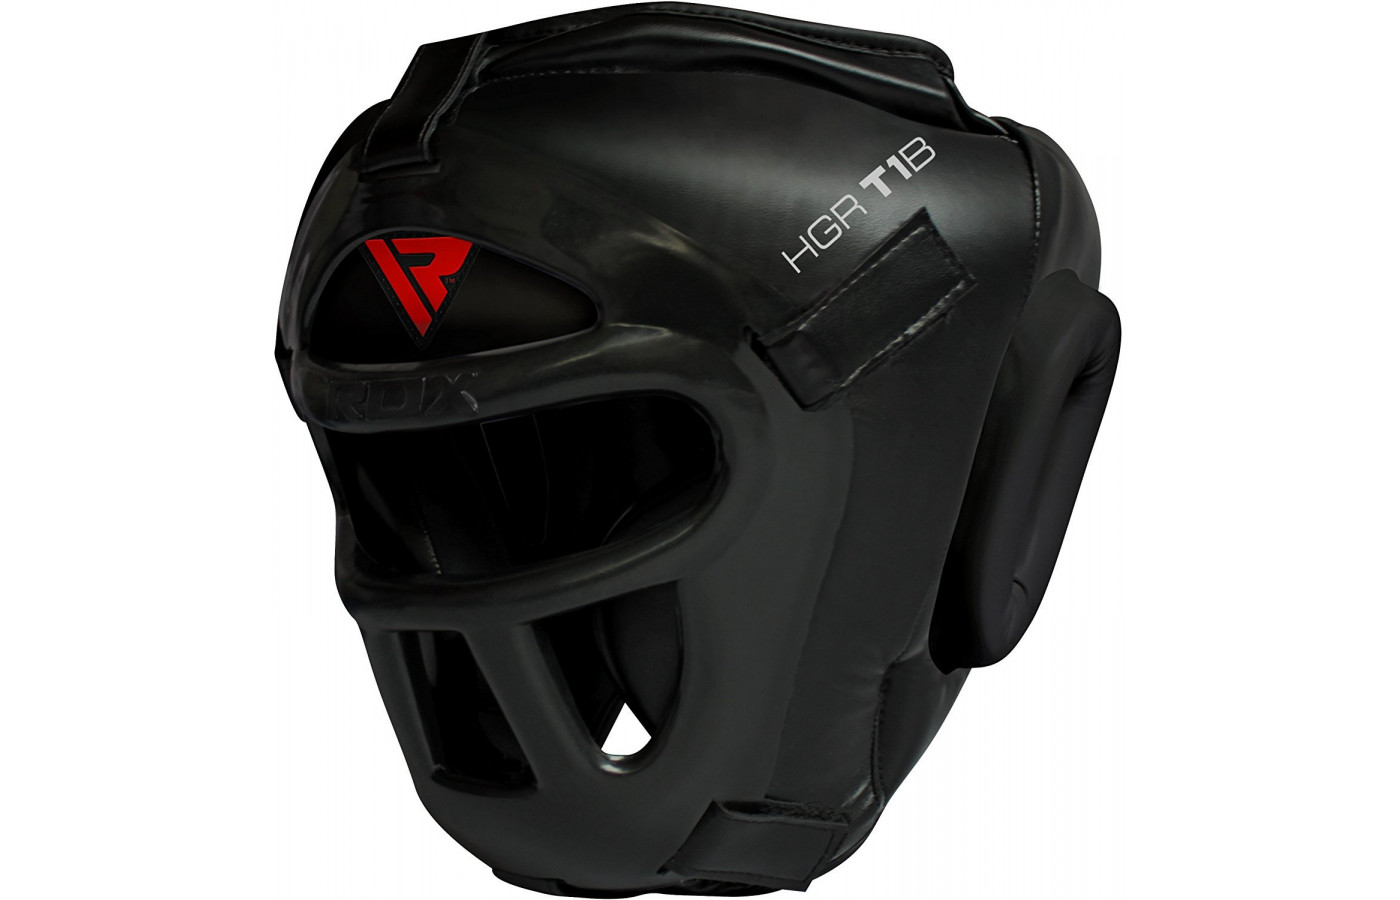 rdx headgear all black